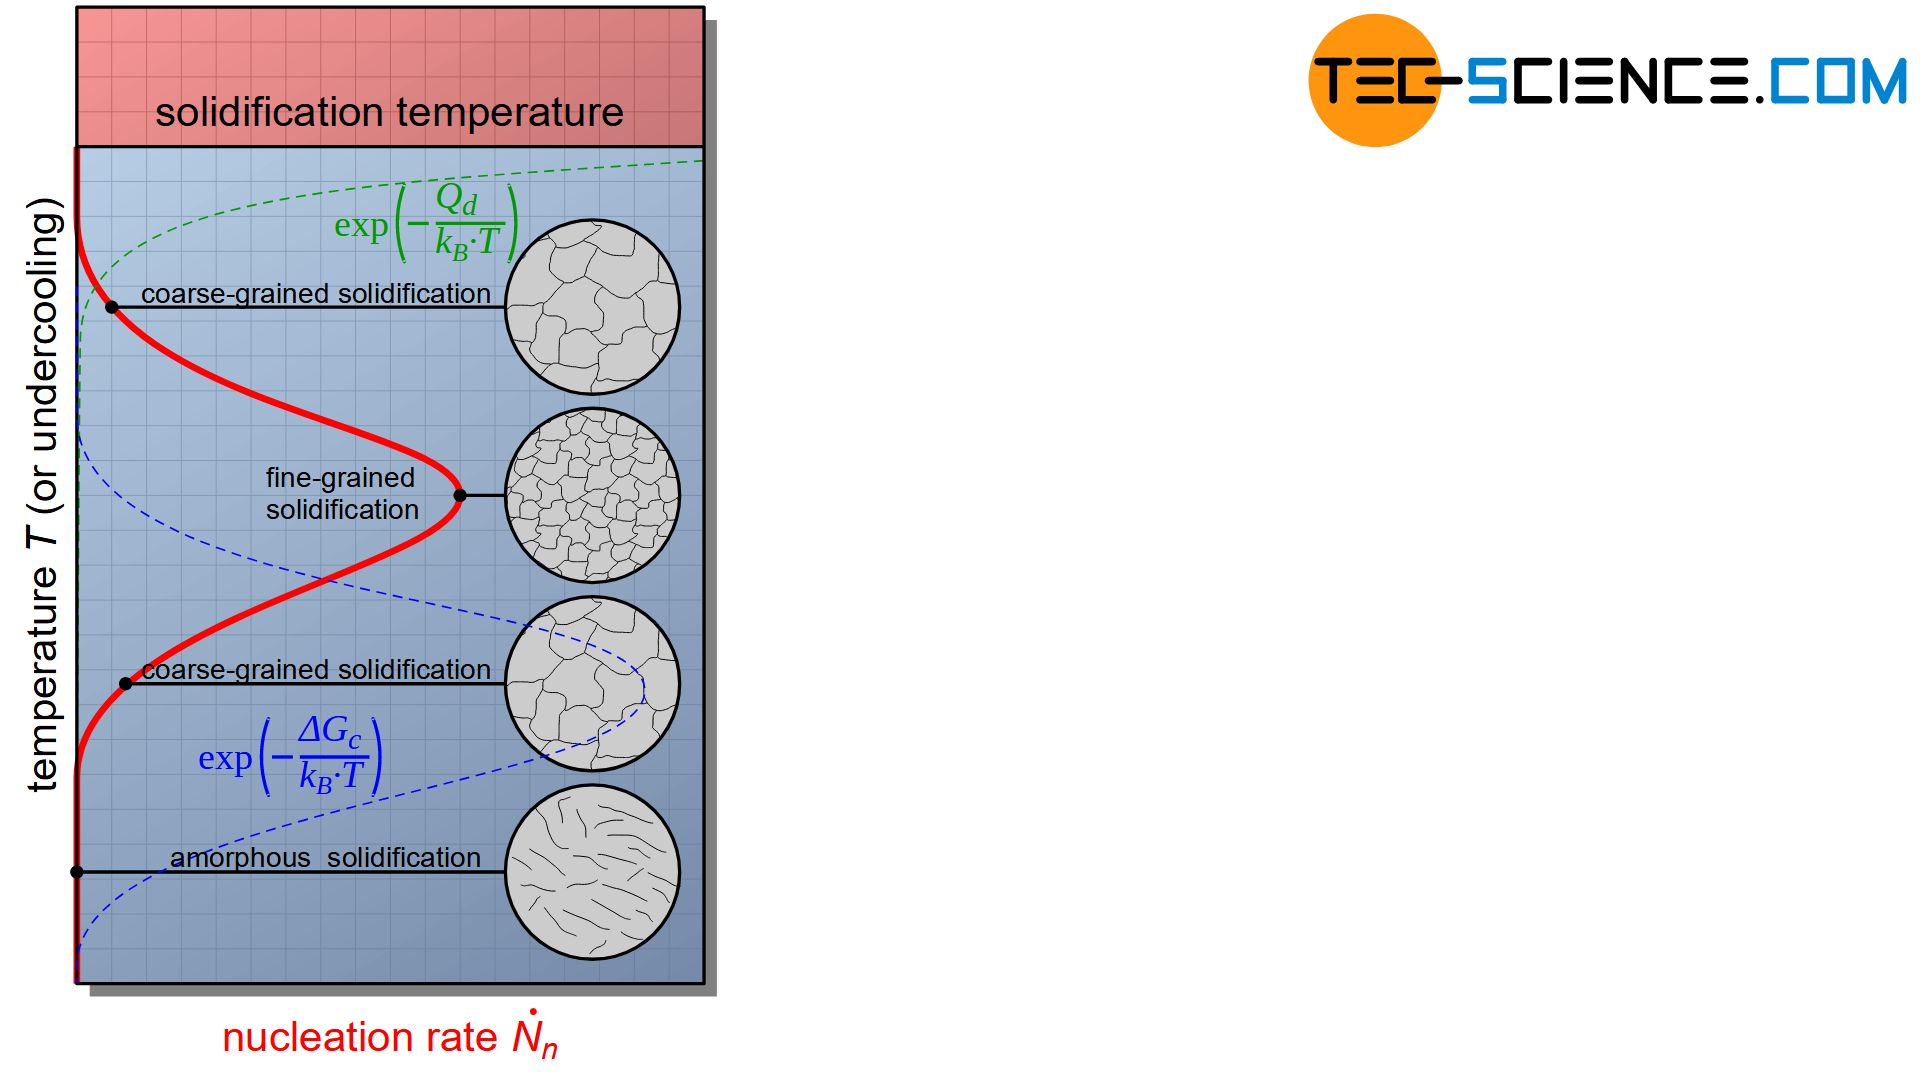 Nucleation rate as a function of supercooling